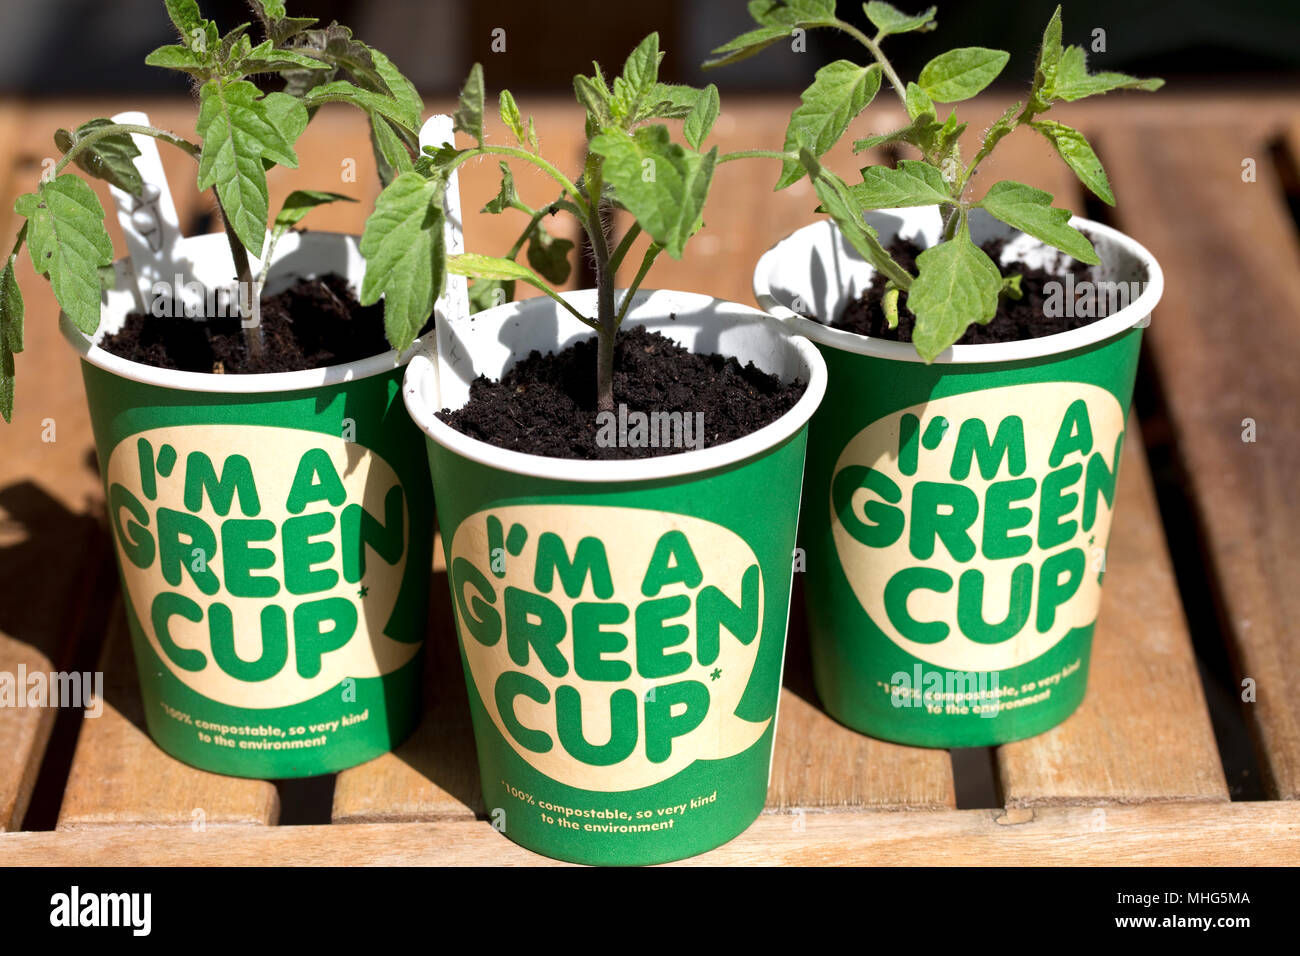 100% compostable Green recyclable coffee cups with tomato plants made with no plastic UK - Stock Image